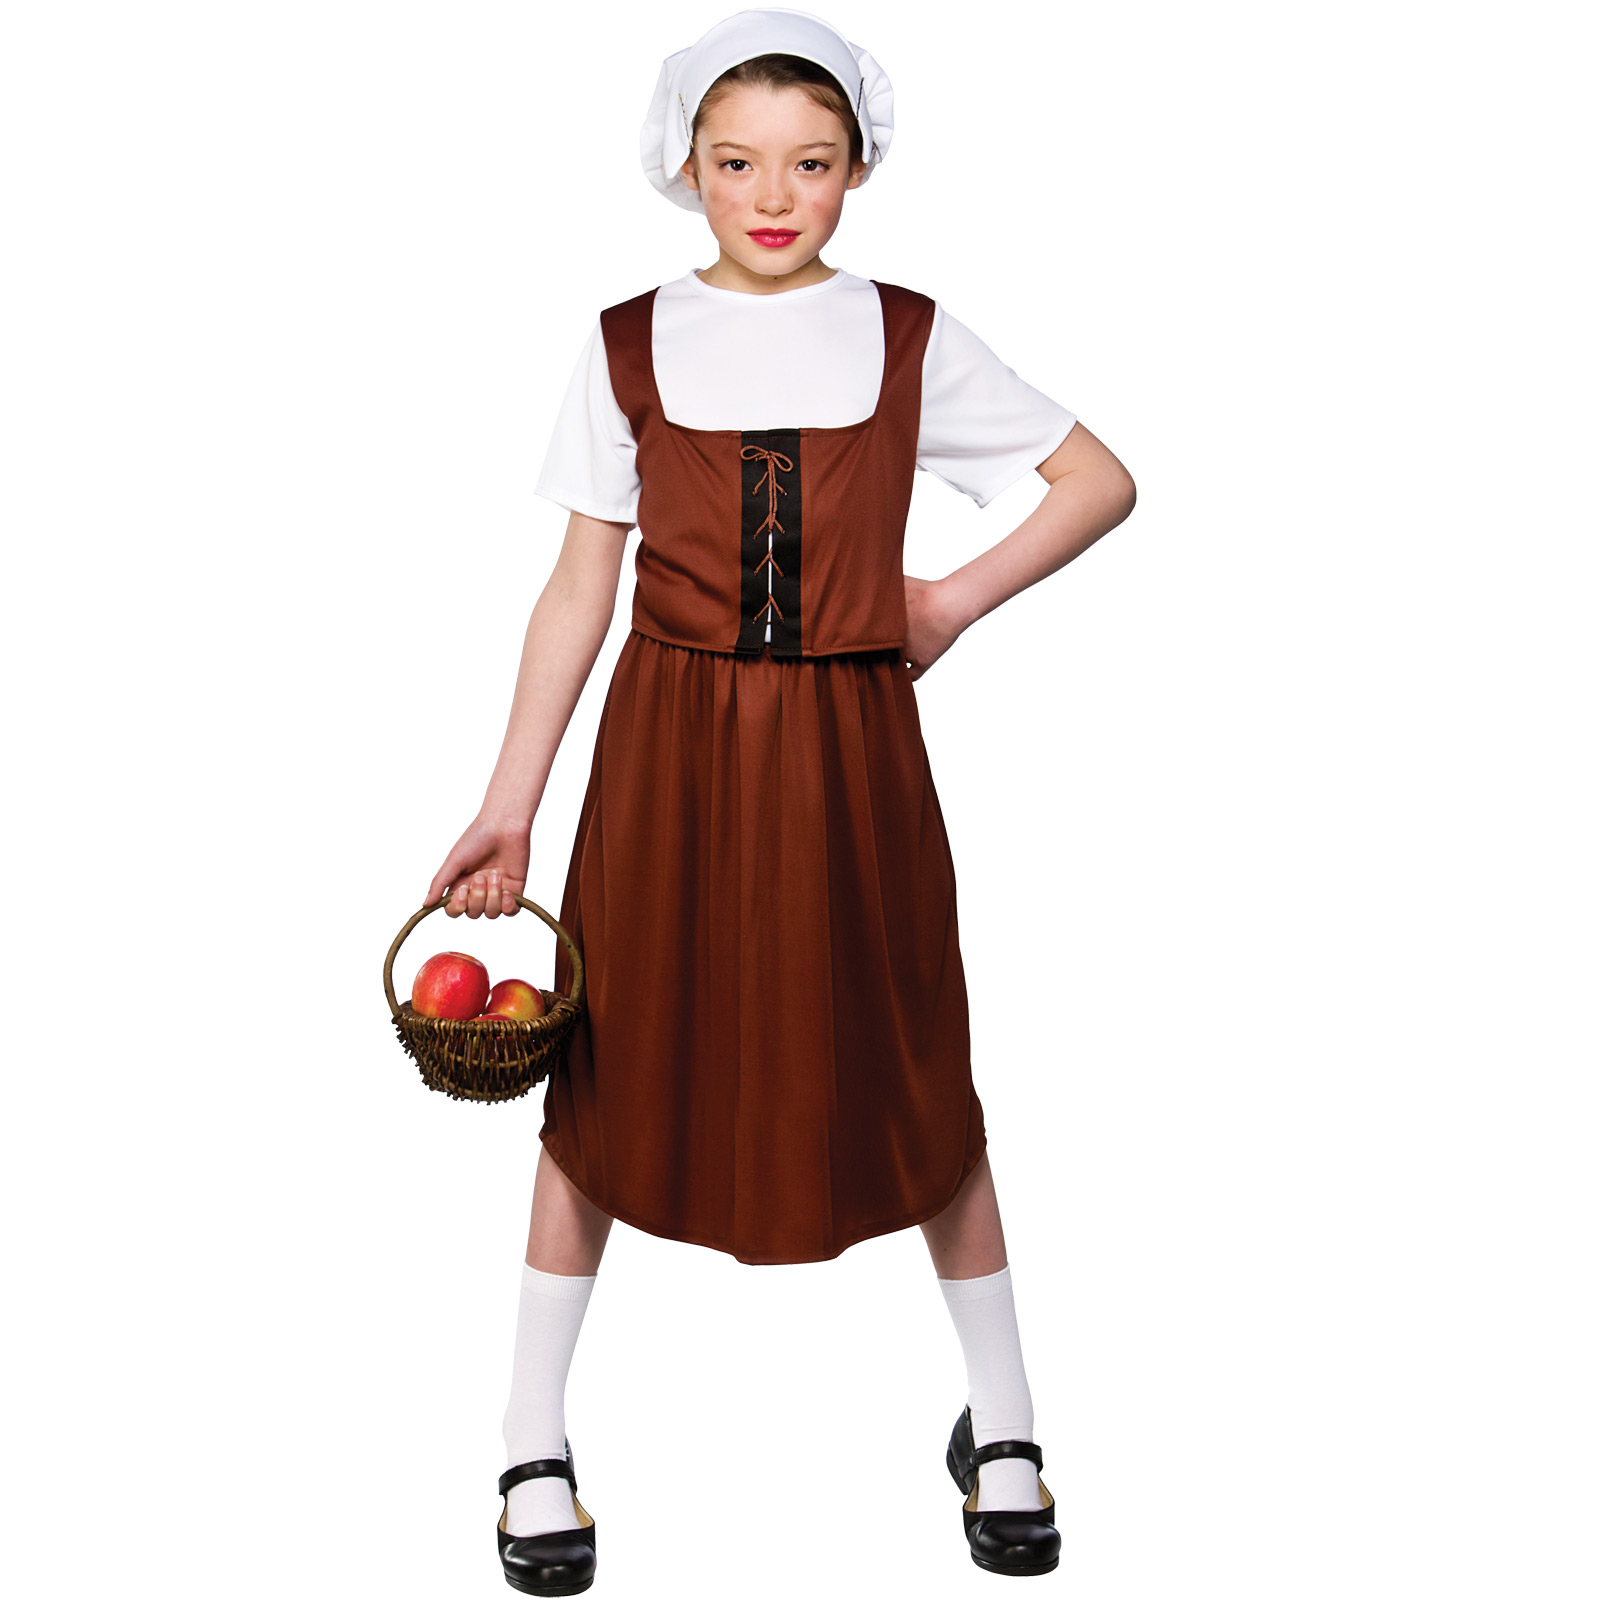 Girls-Tudor-Peasant-Girl-Costume-Fancy-Dress-Up-Party-Halloween-Outfit-Kid-Child